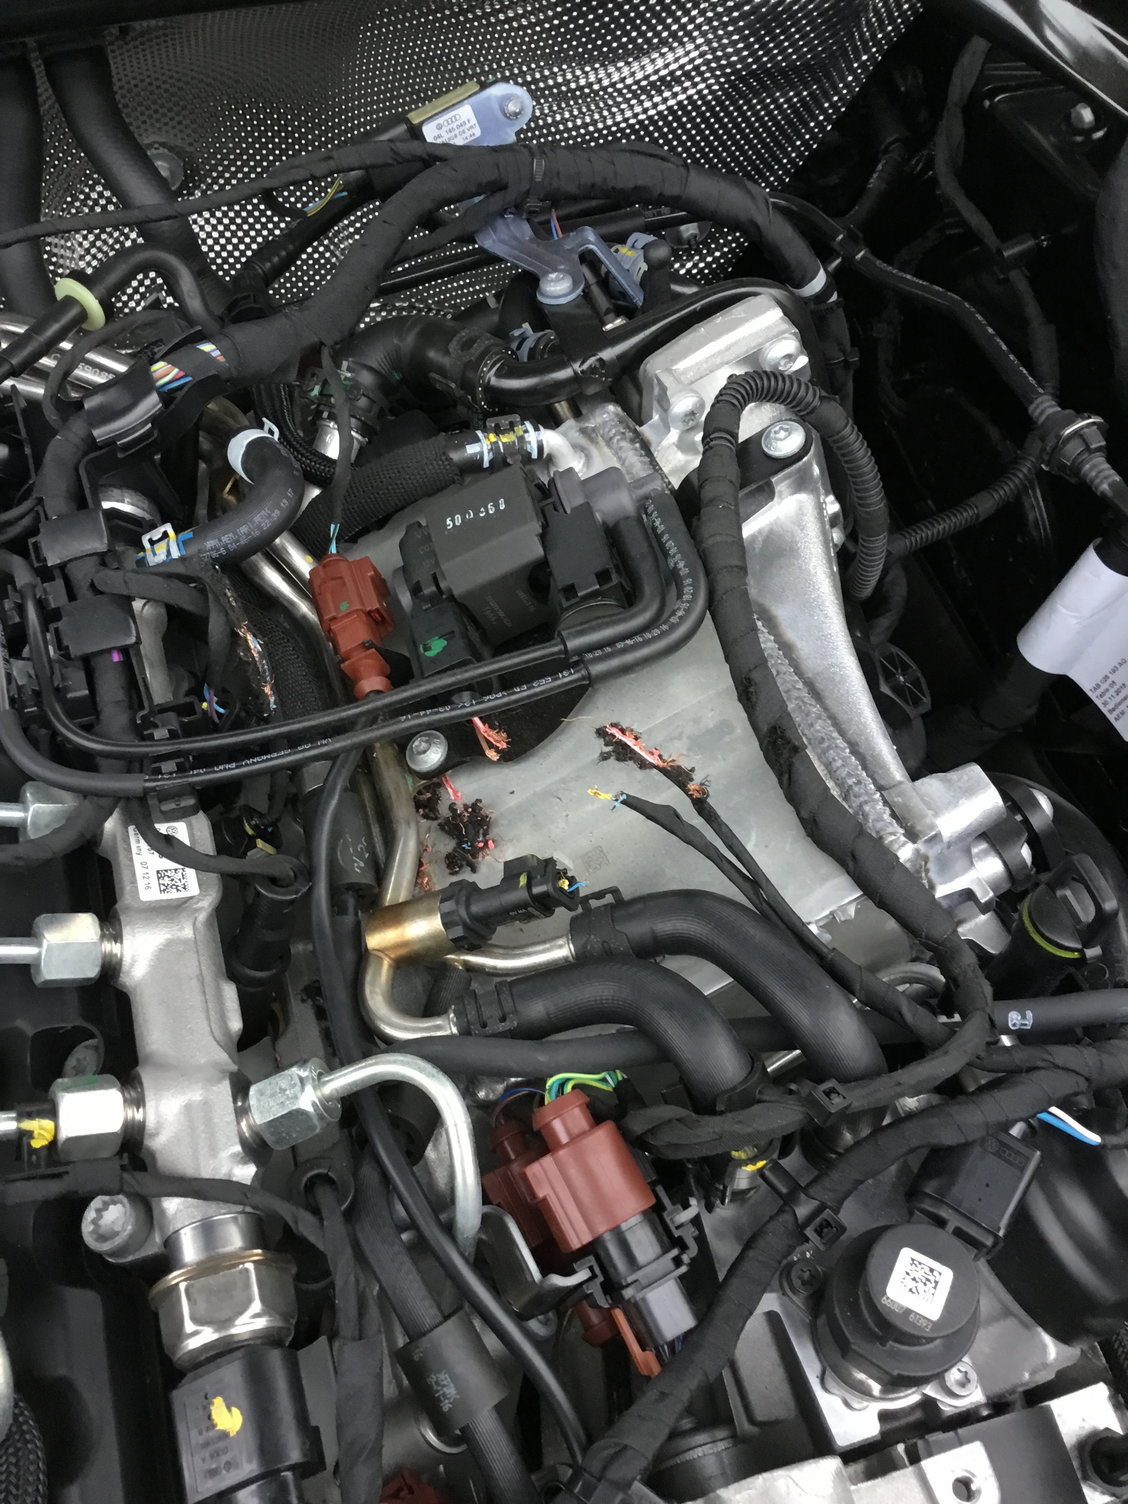 Rodents ate wires in my 2018 Q5!!! - AudiWorld Forums